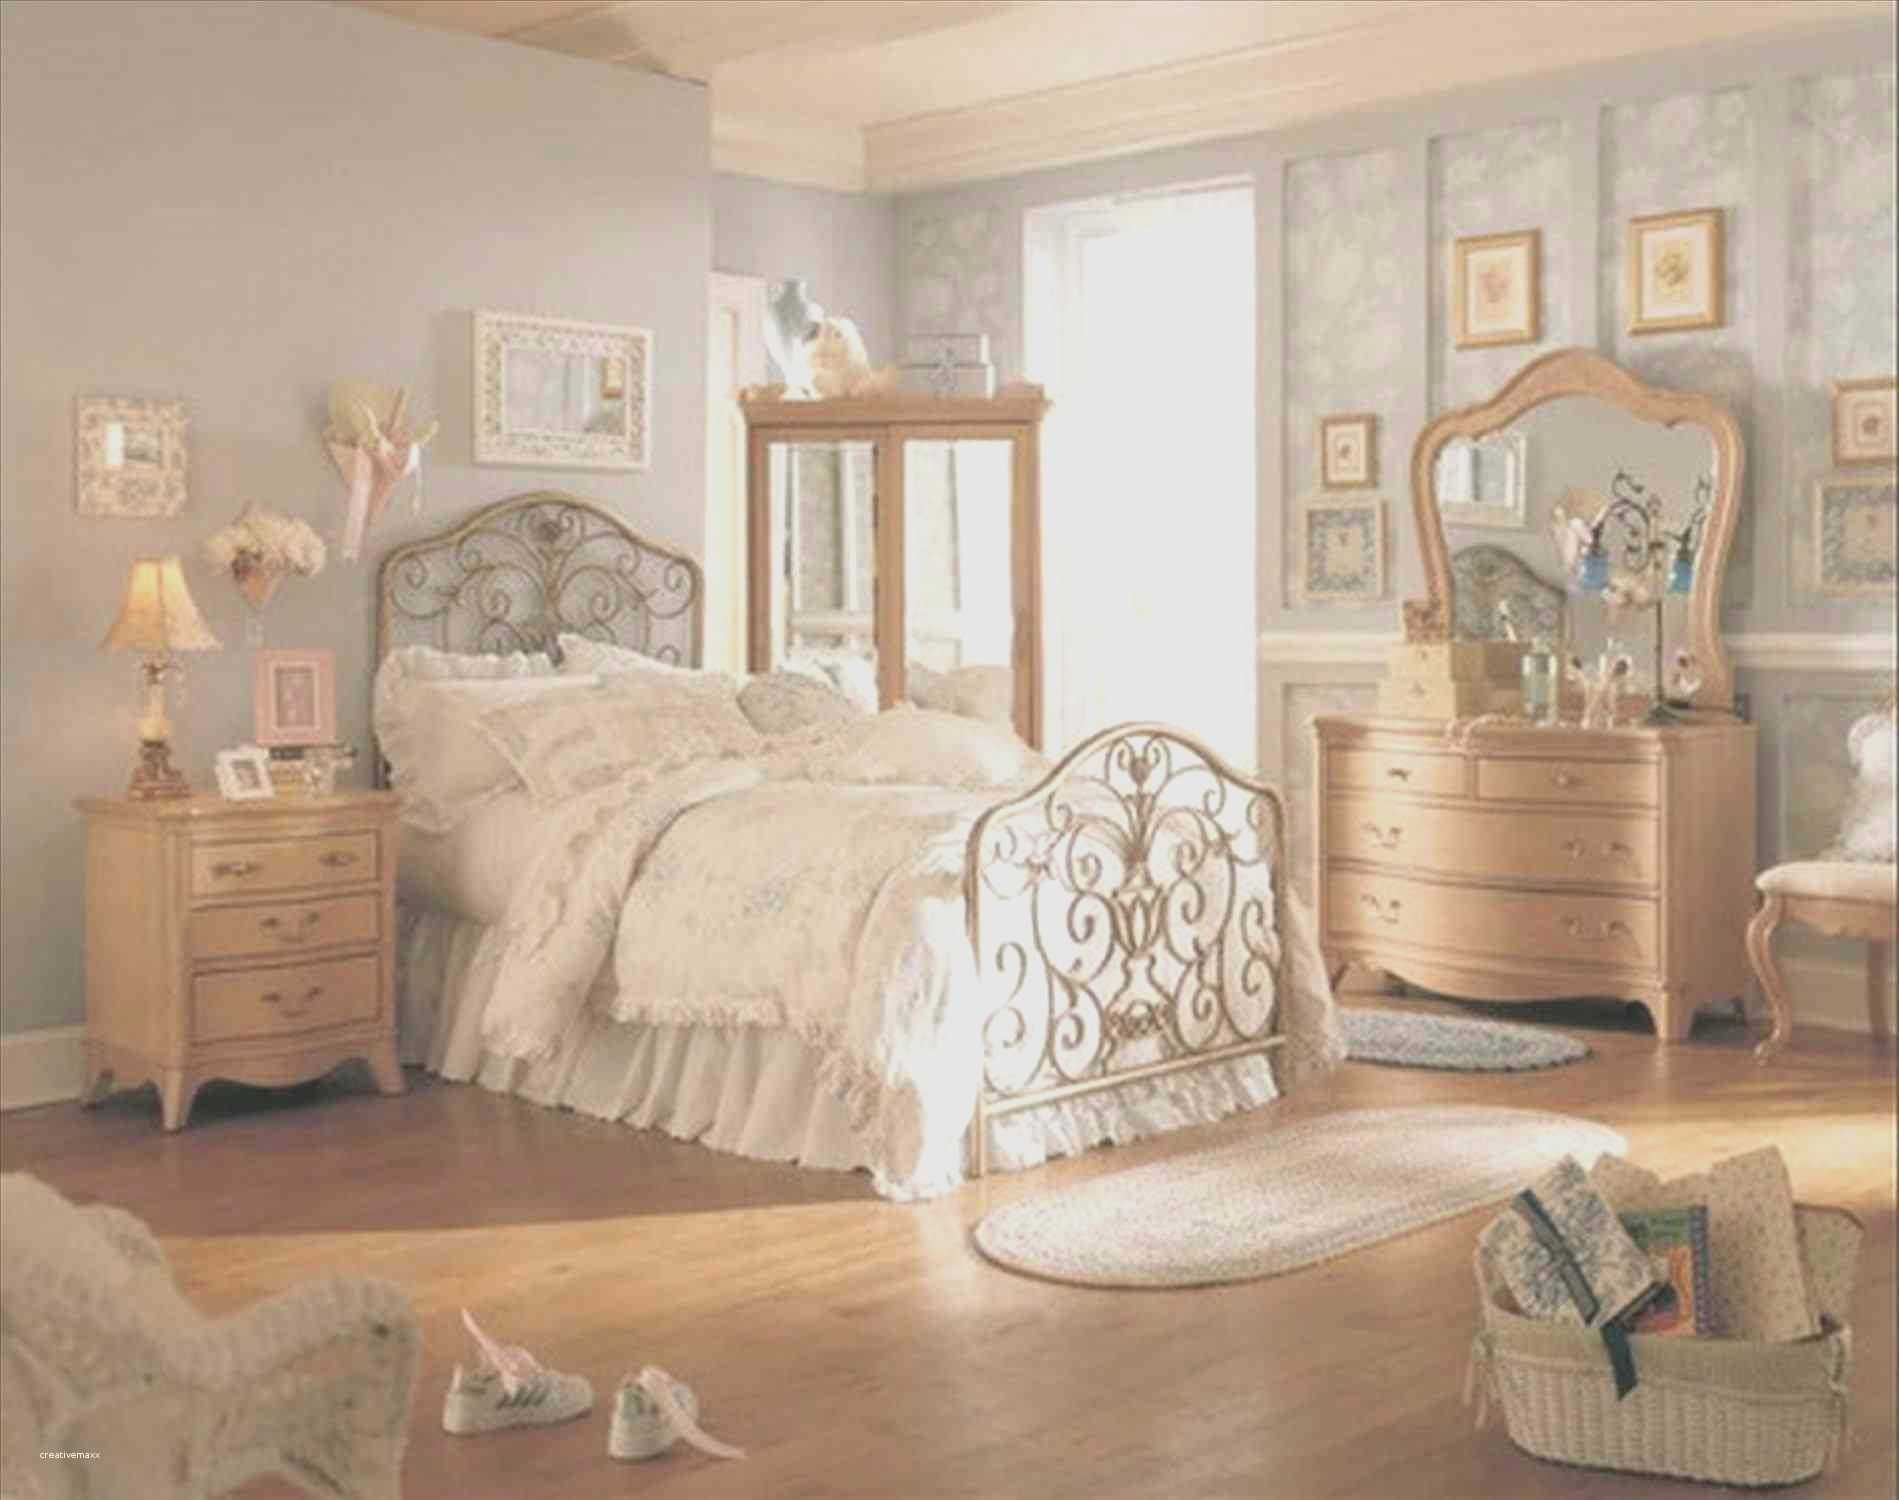 beautiful bedroom ideas for teenage girls vintage bedroom design ideas pinterest girls. Black Bedroom Furniture Sets. Home Design Ideas